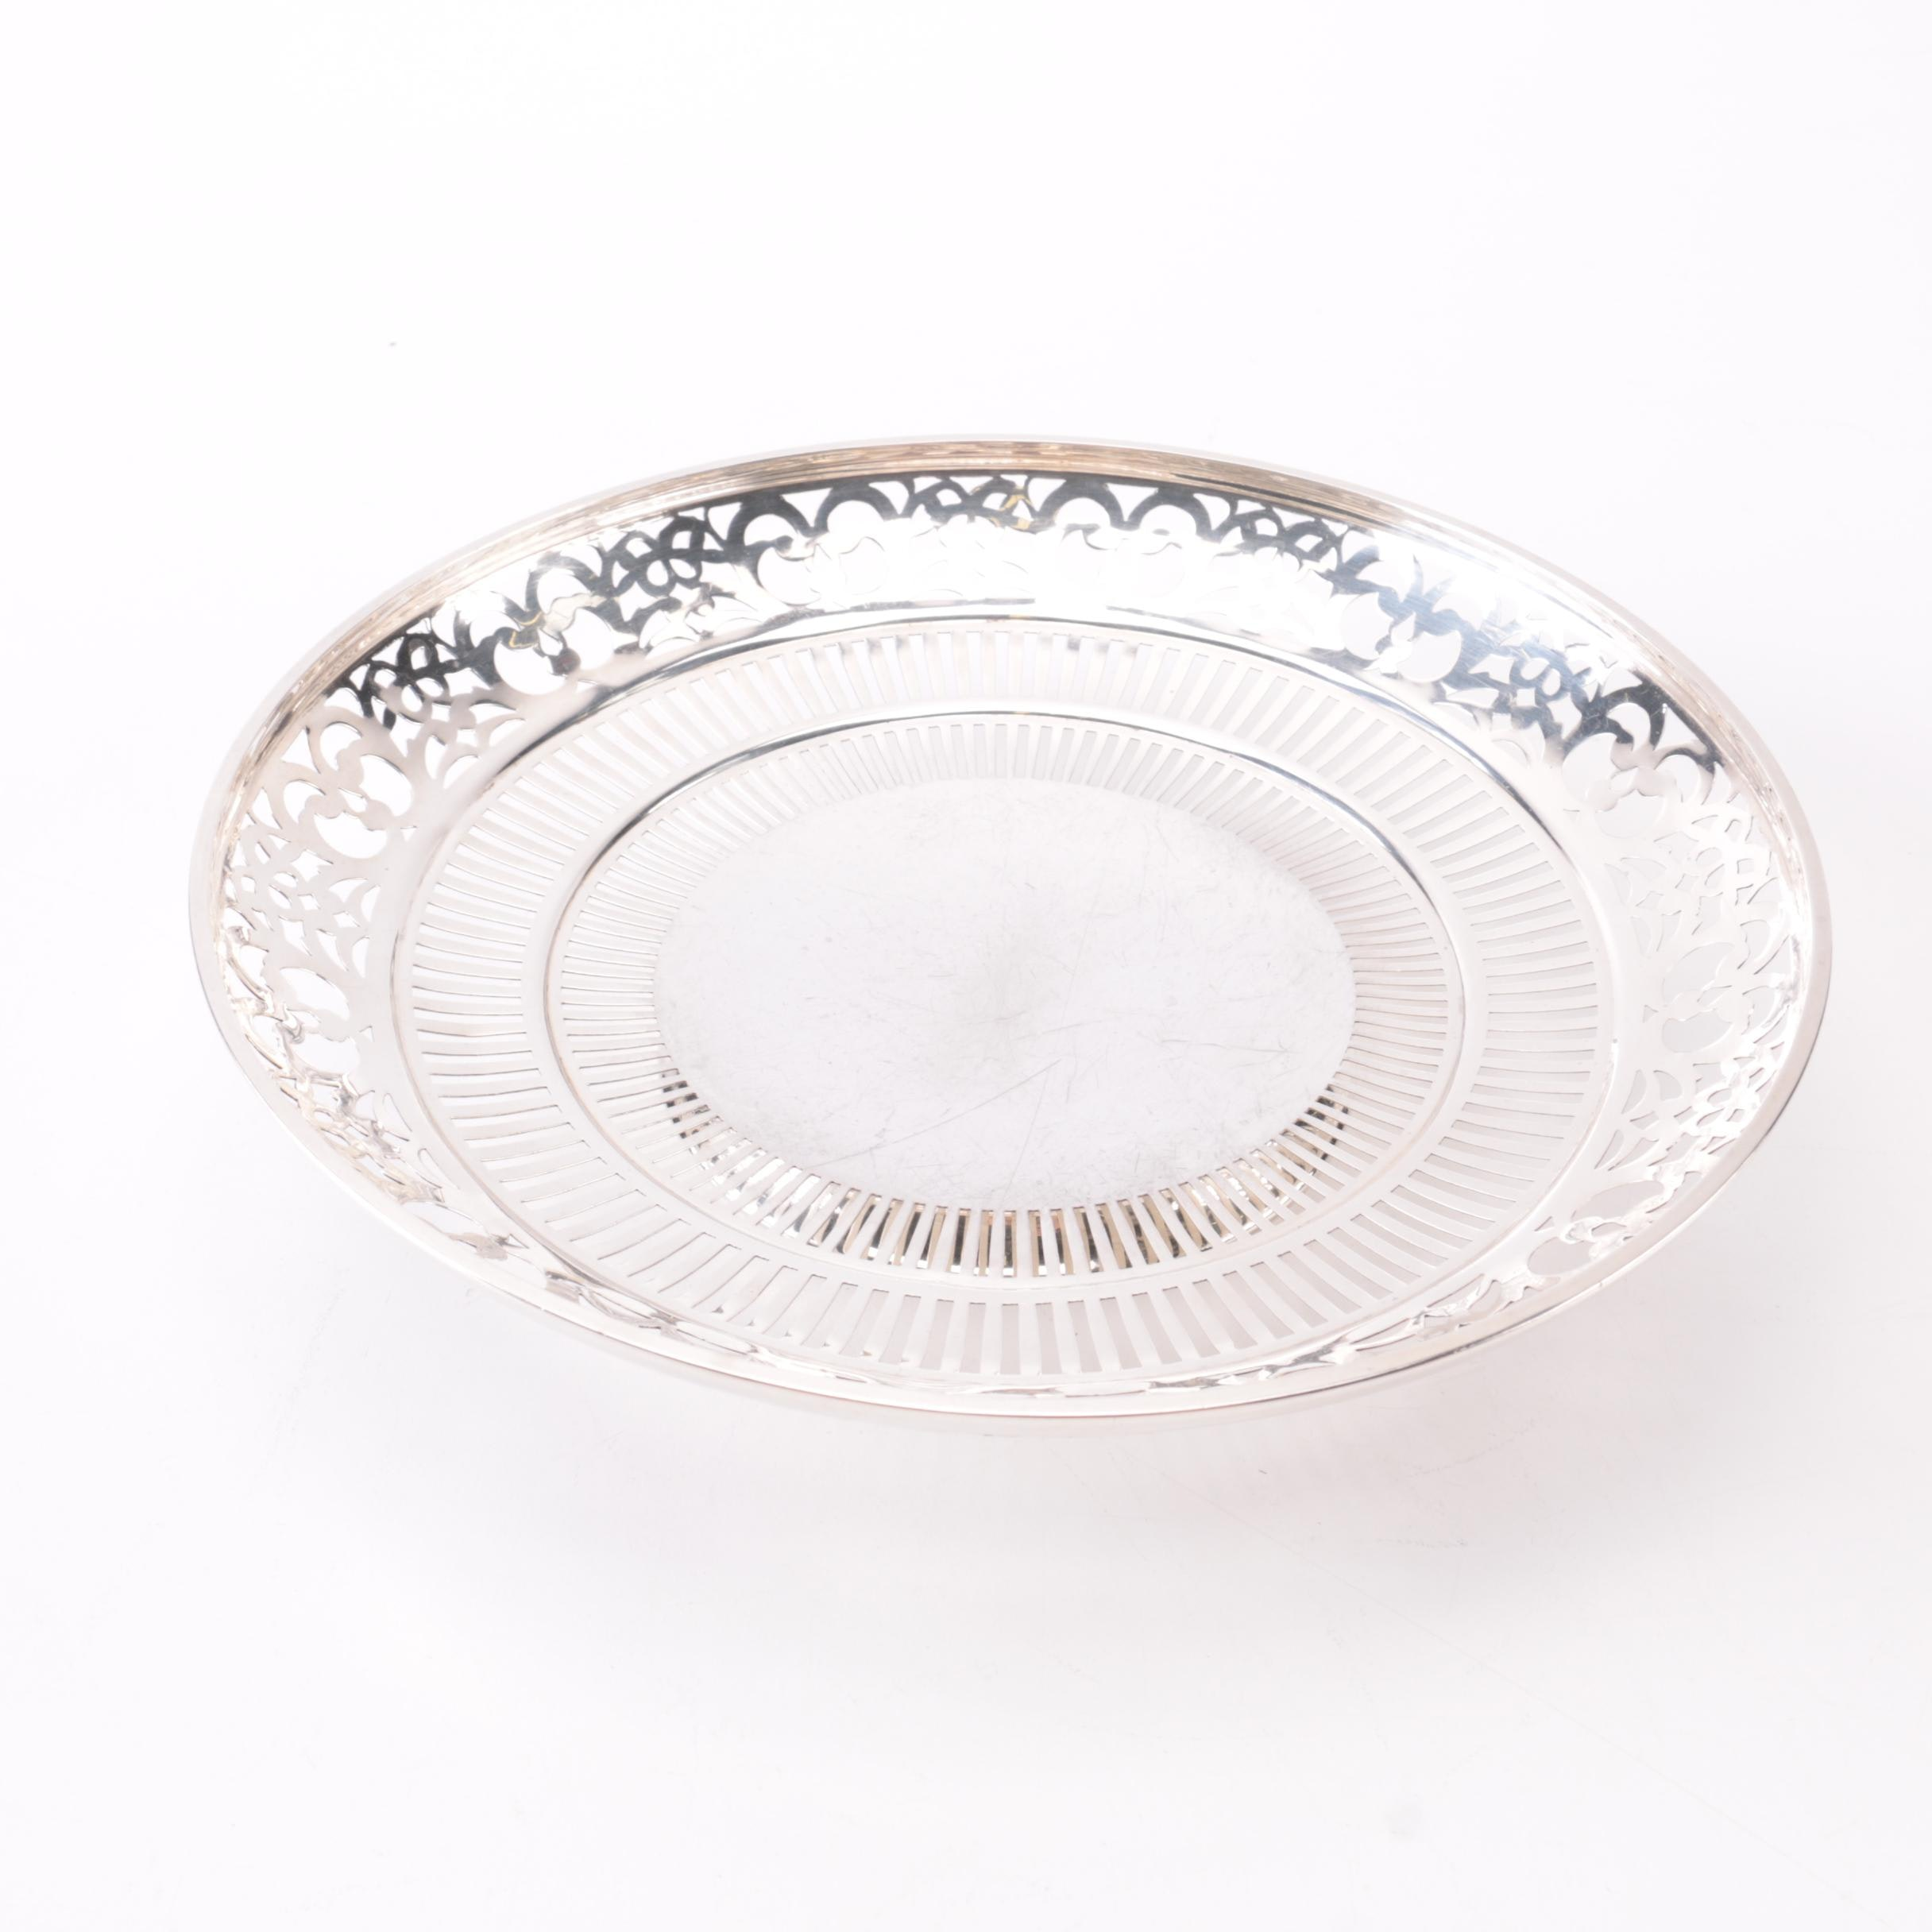 Webster Company Sterling Silver Footed Dish